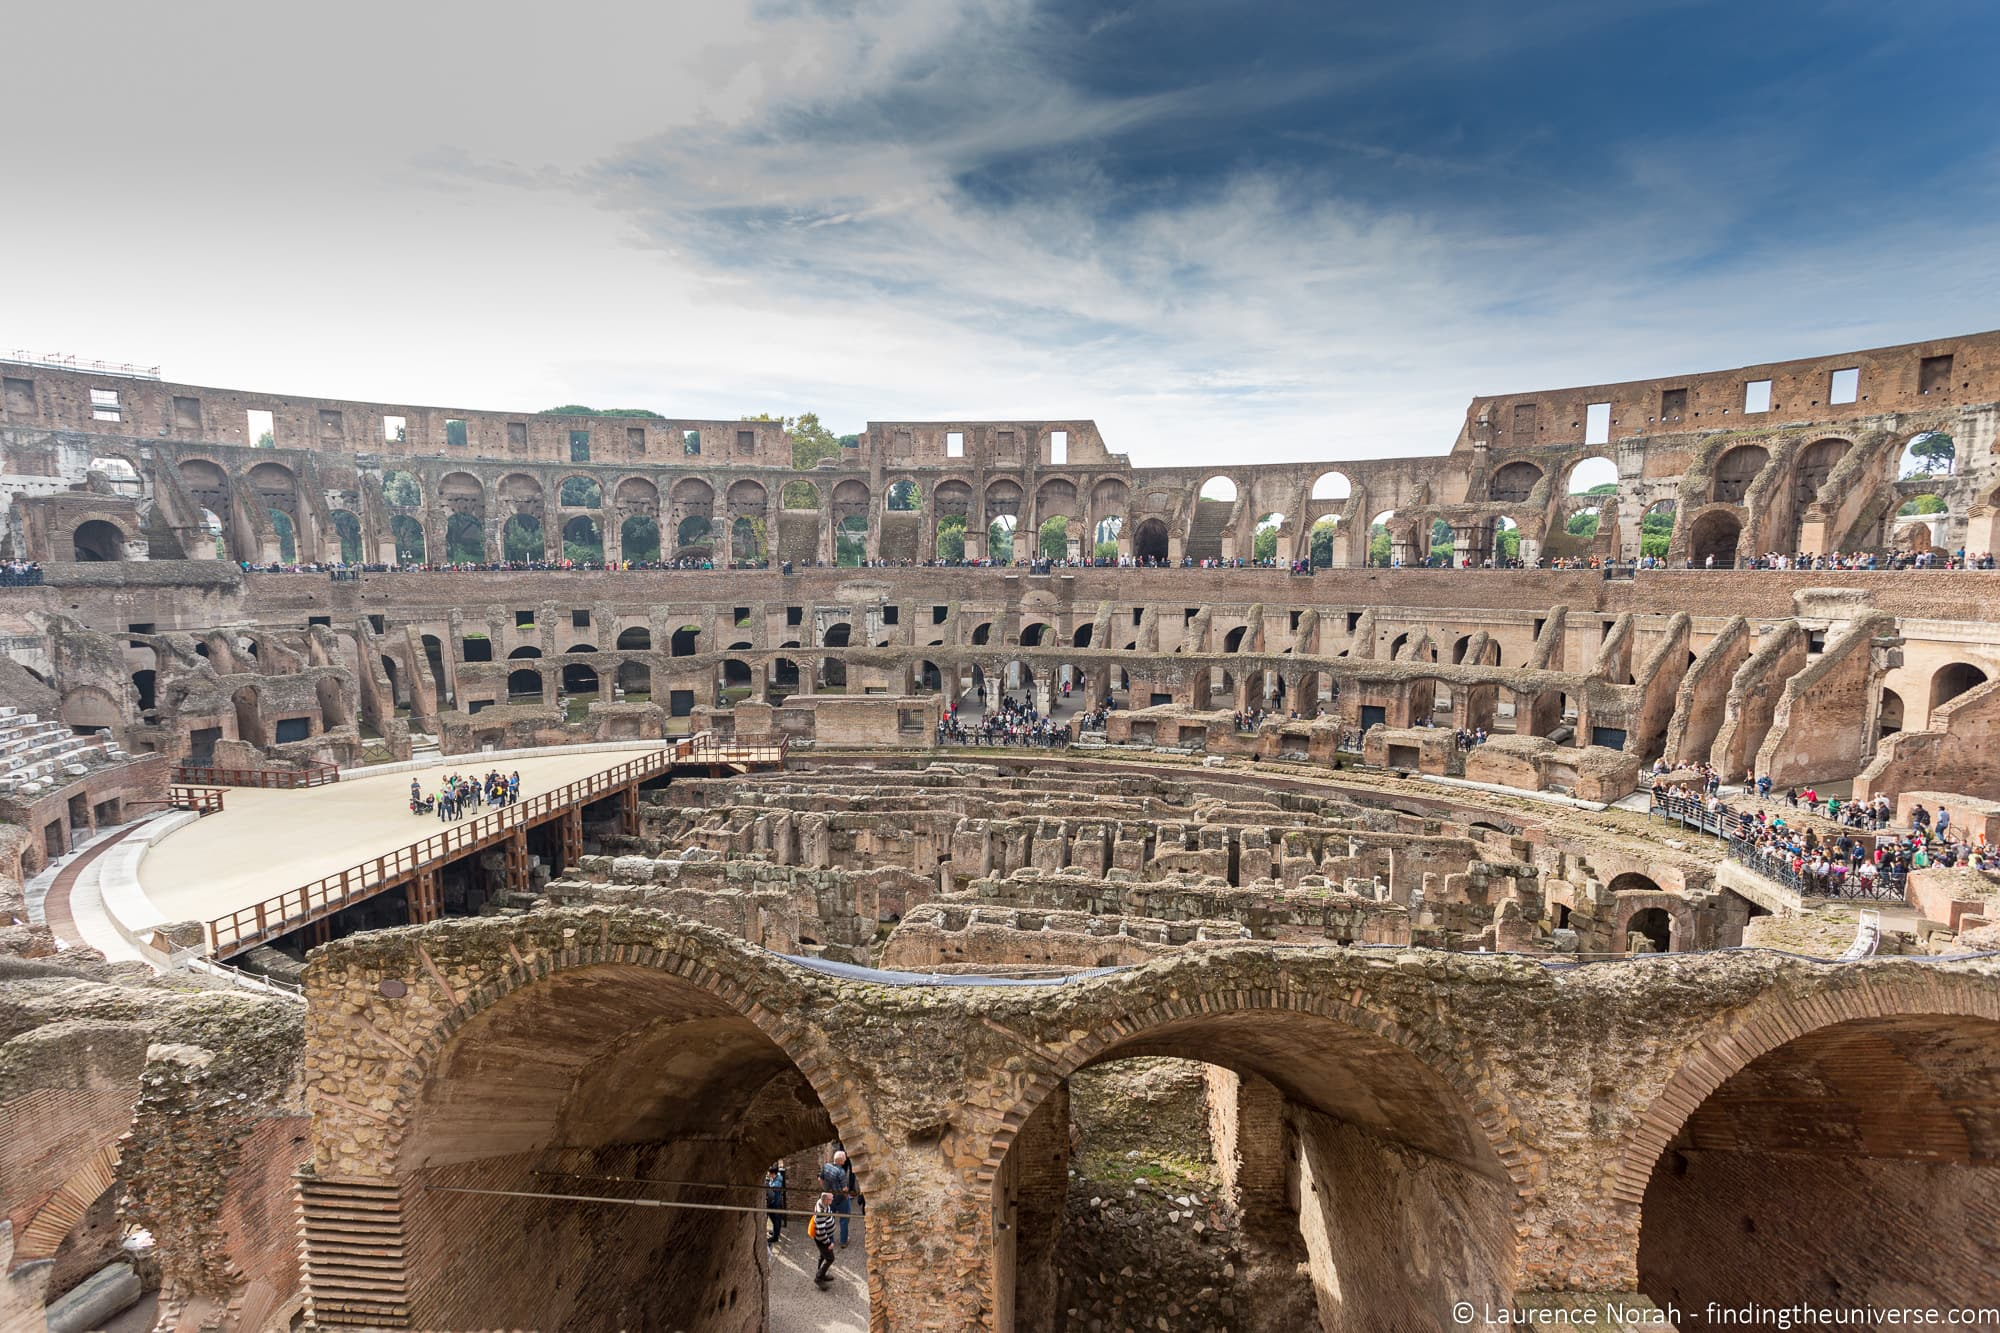 Visiting The Colosseum Rome In 2019 Everything You Need To Know